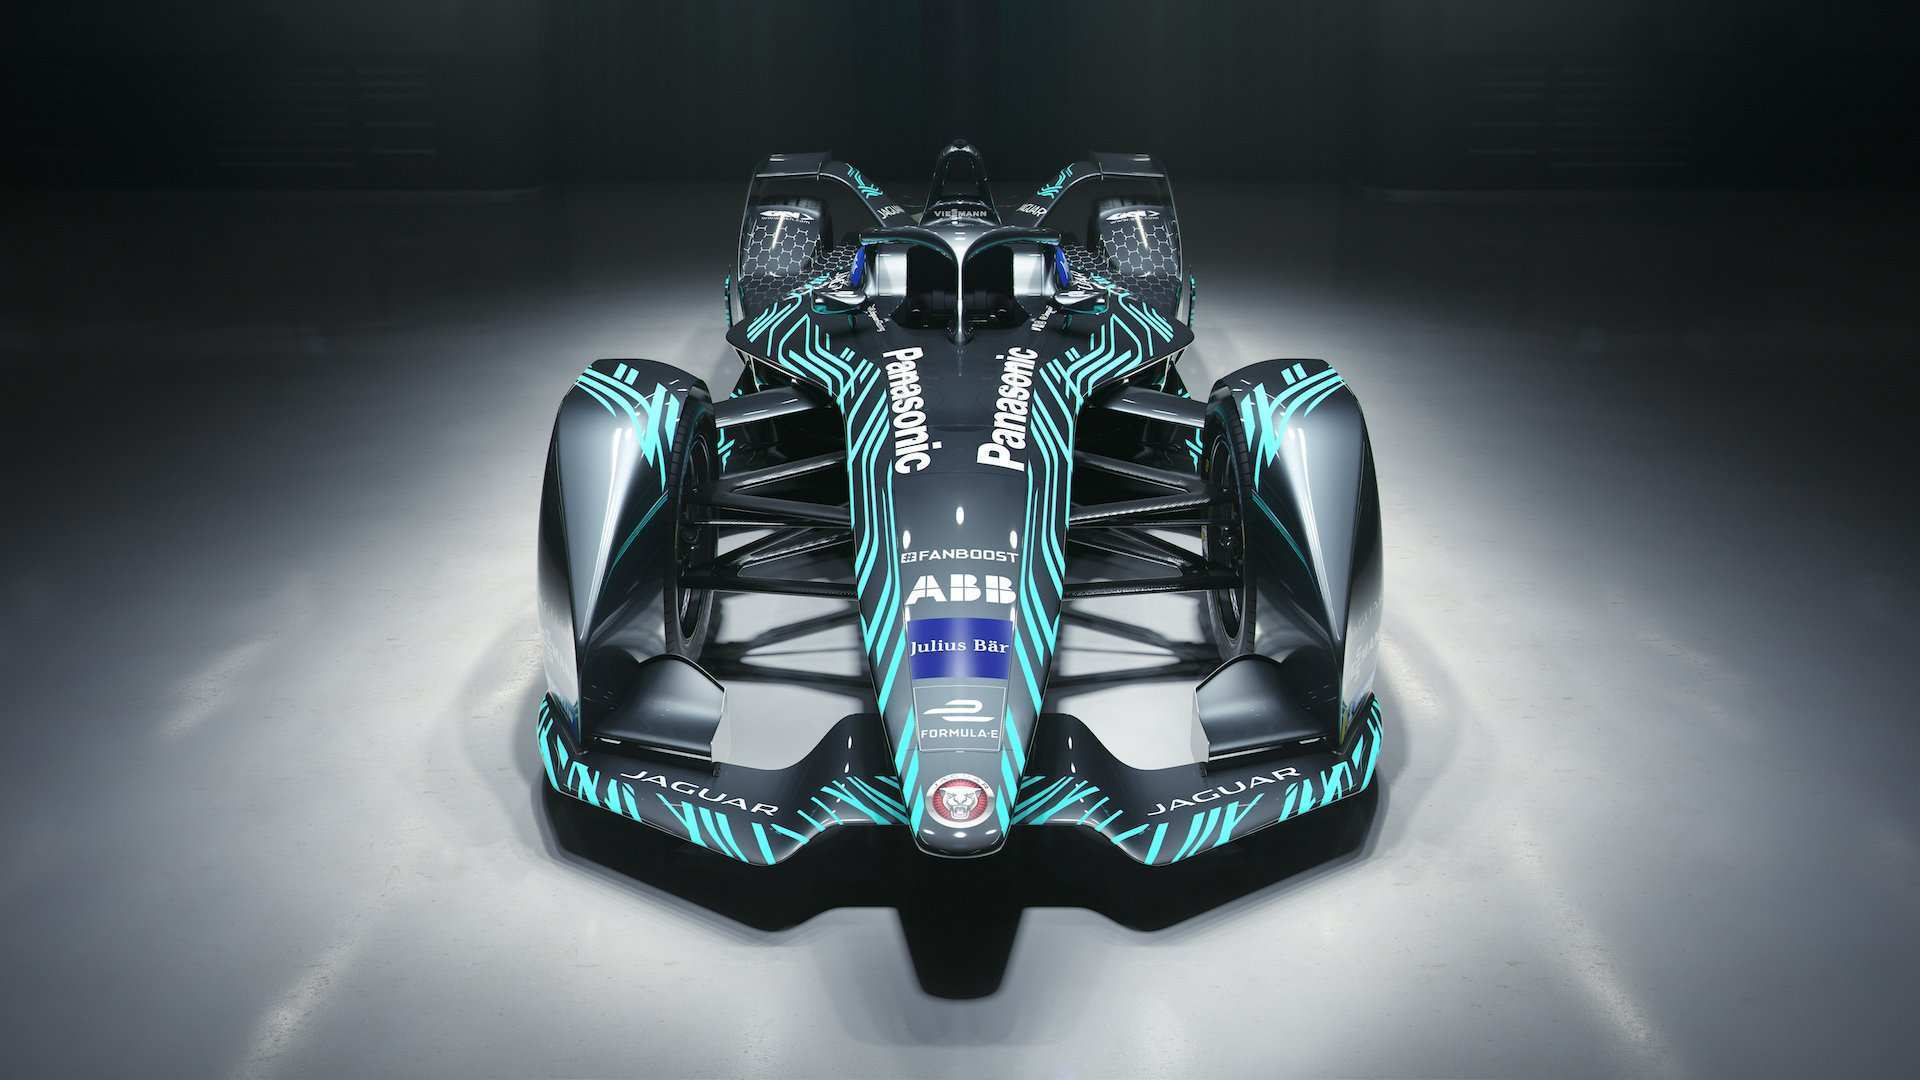 62 All New Mercedes Formula E 2020 Pictures with Mercedes Formula E 2020